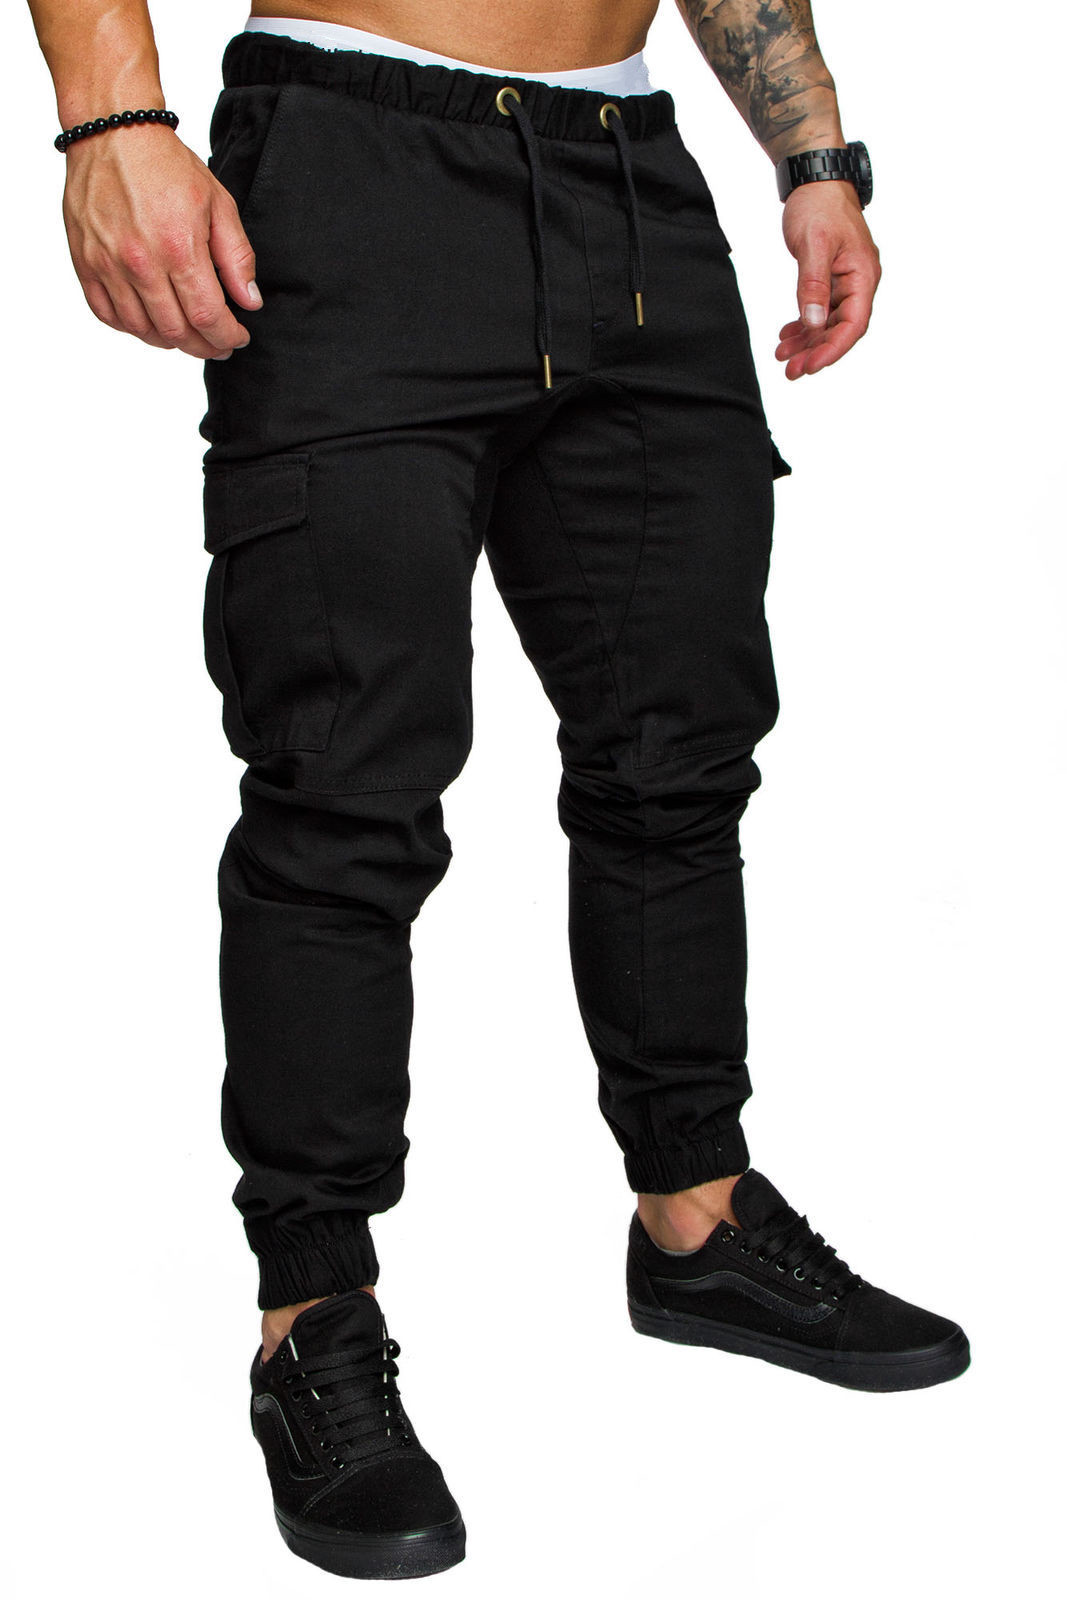 MRMT 2020 Brand New Men's Trousers Leisure Fashion Solid Color Small Feet Pants For Male Tie Tightness Elastic Trouser